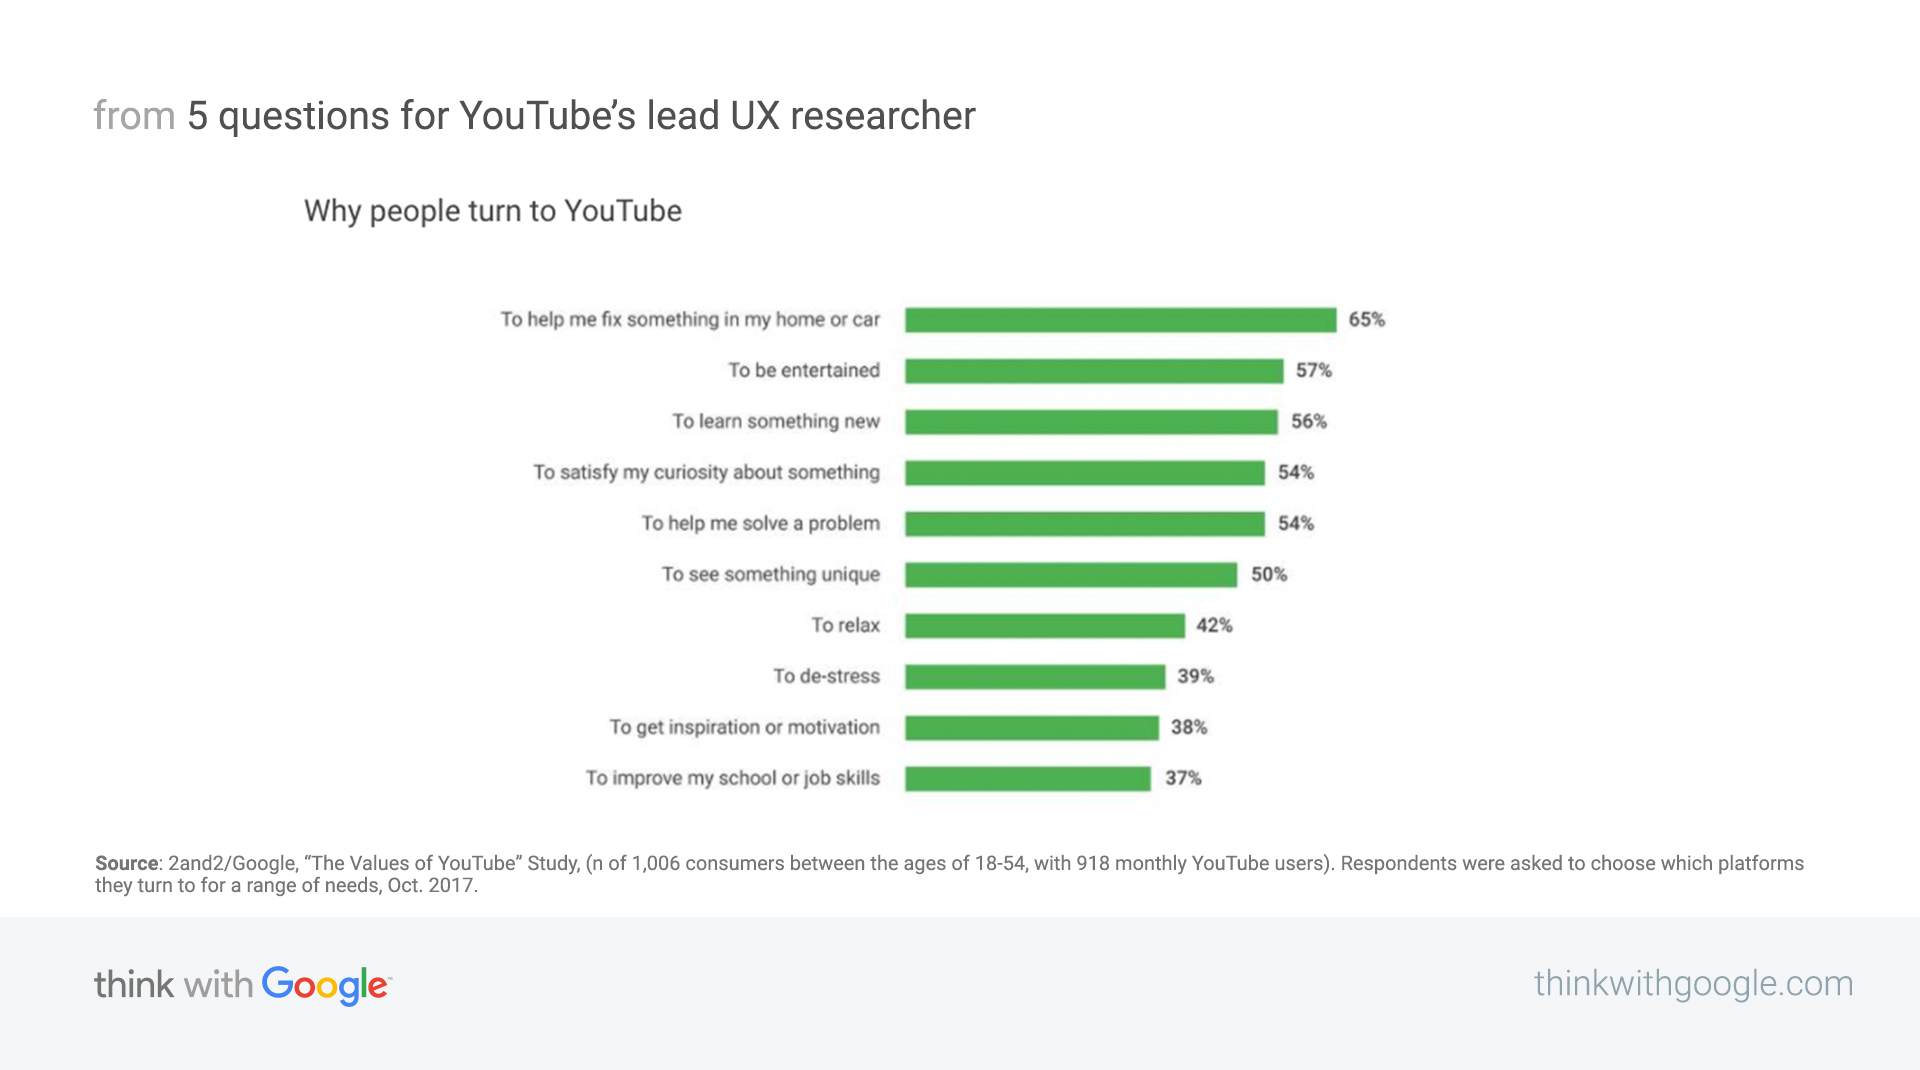 5 questions for YouTube's lead UX researcher - Think with Google